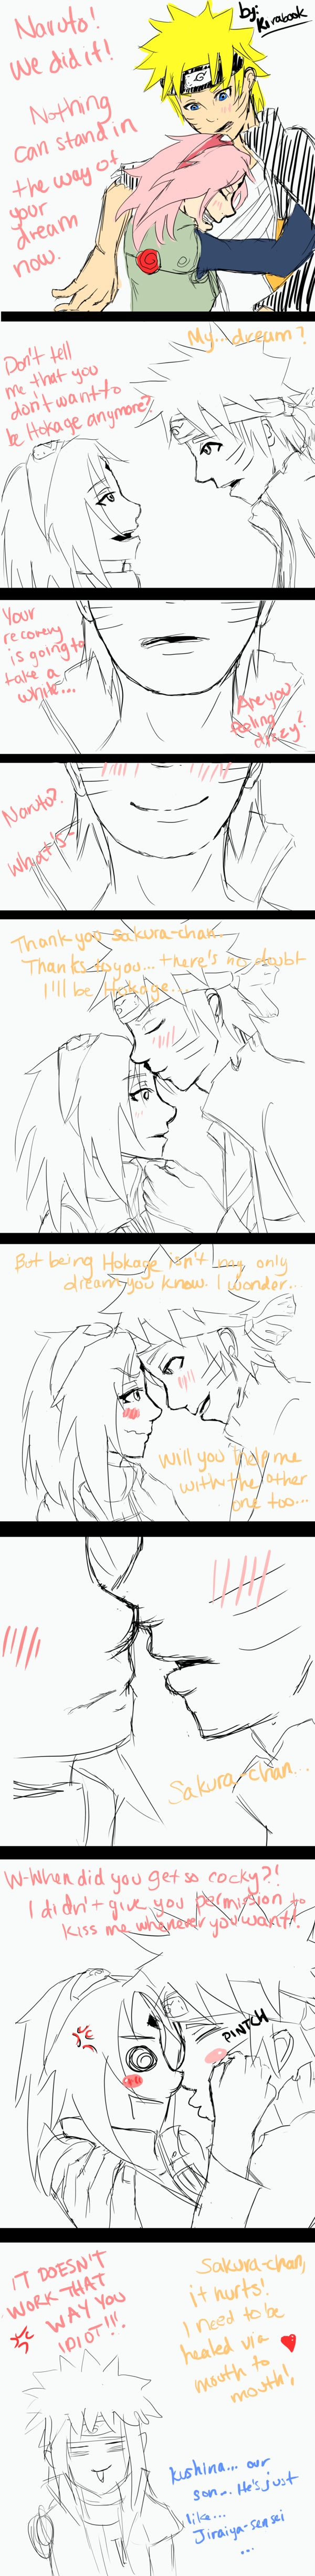 NaruSaku - The Kiss by Kirabook.deviantart.com on @deviantART